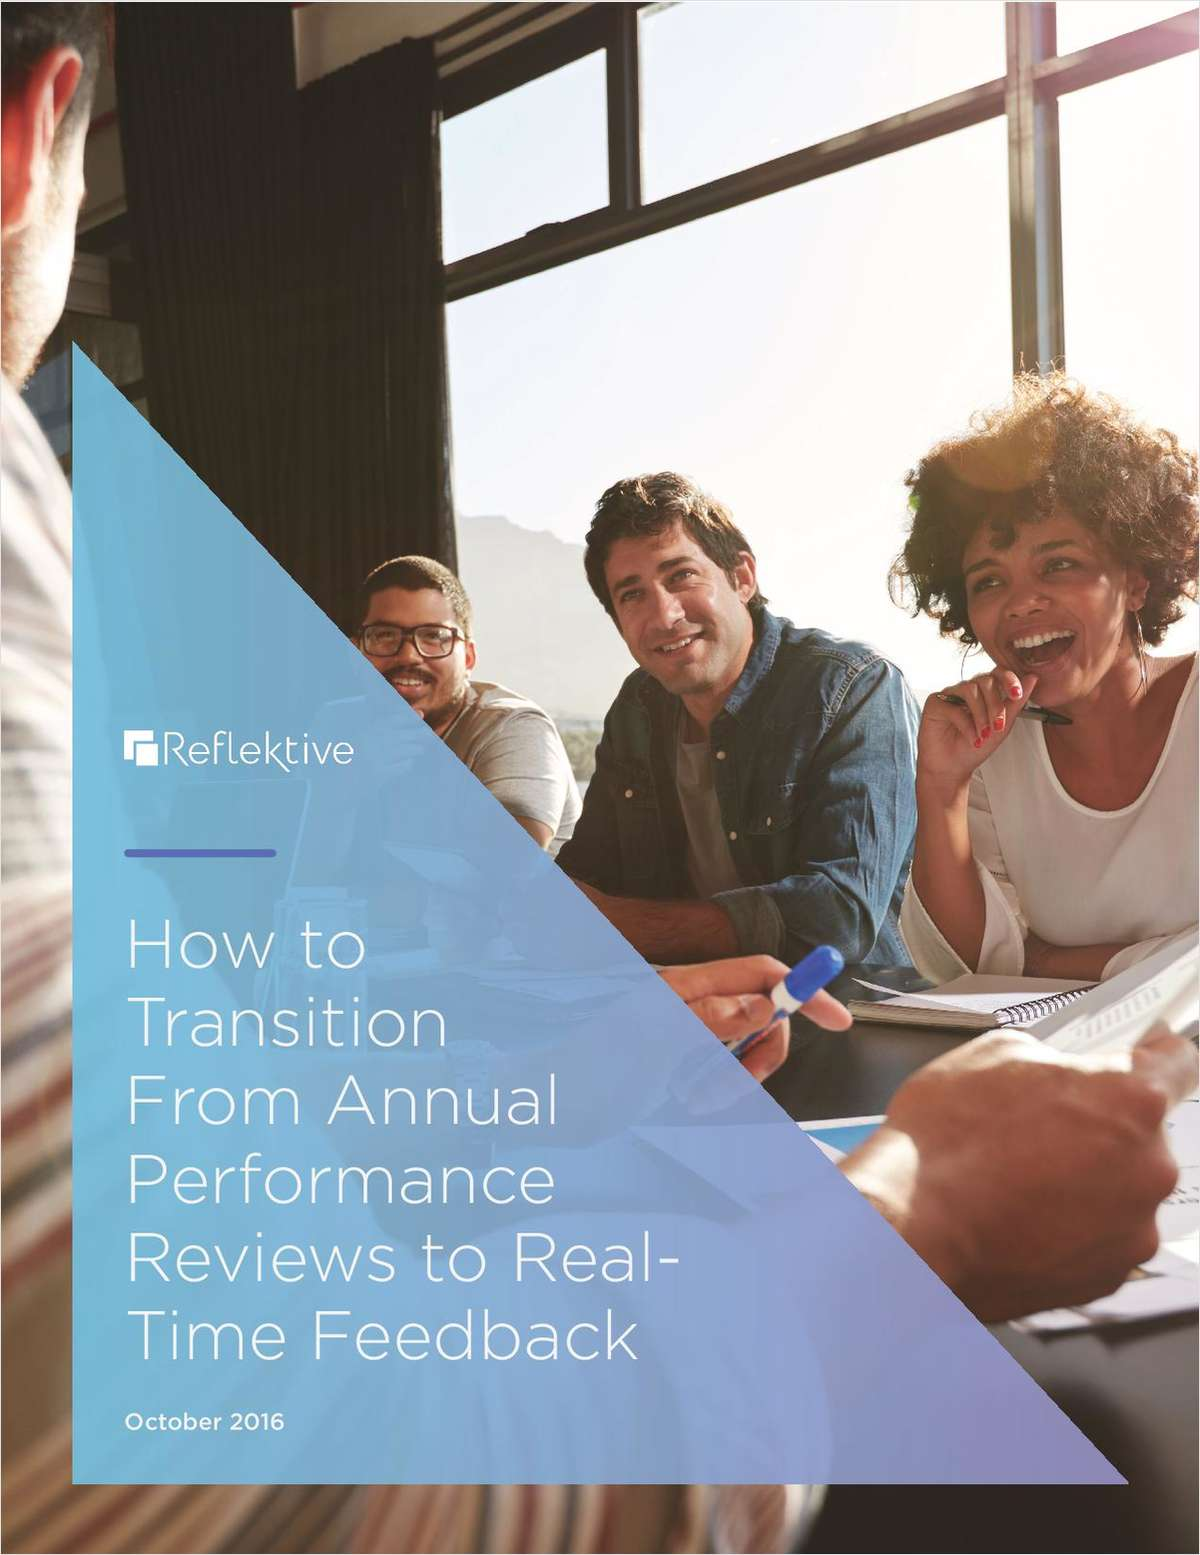 How to Transition Annual Reviews to Real-Time Feedback